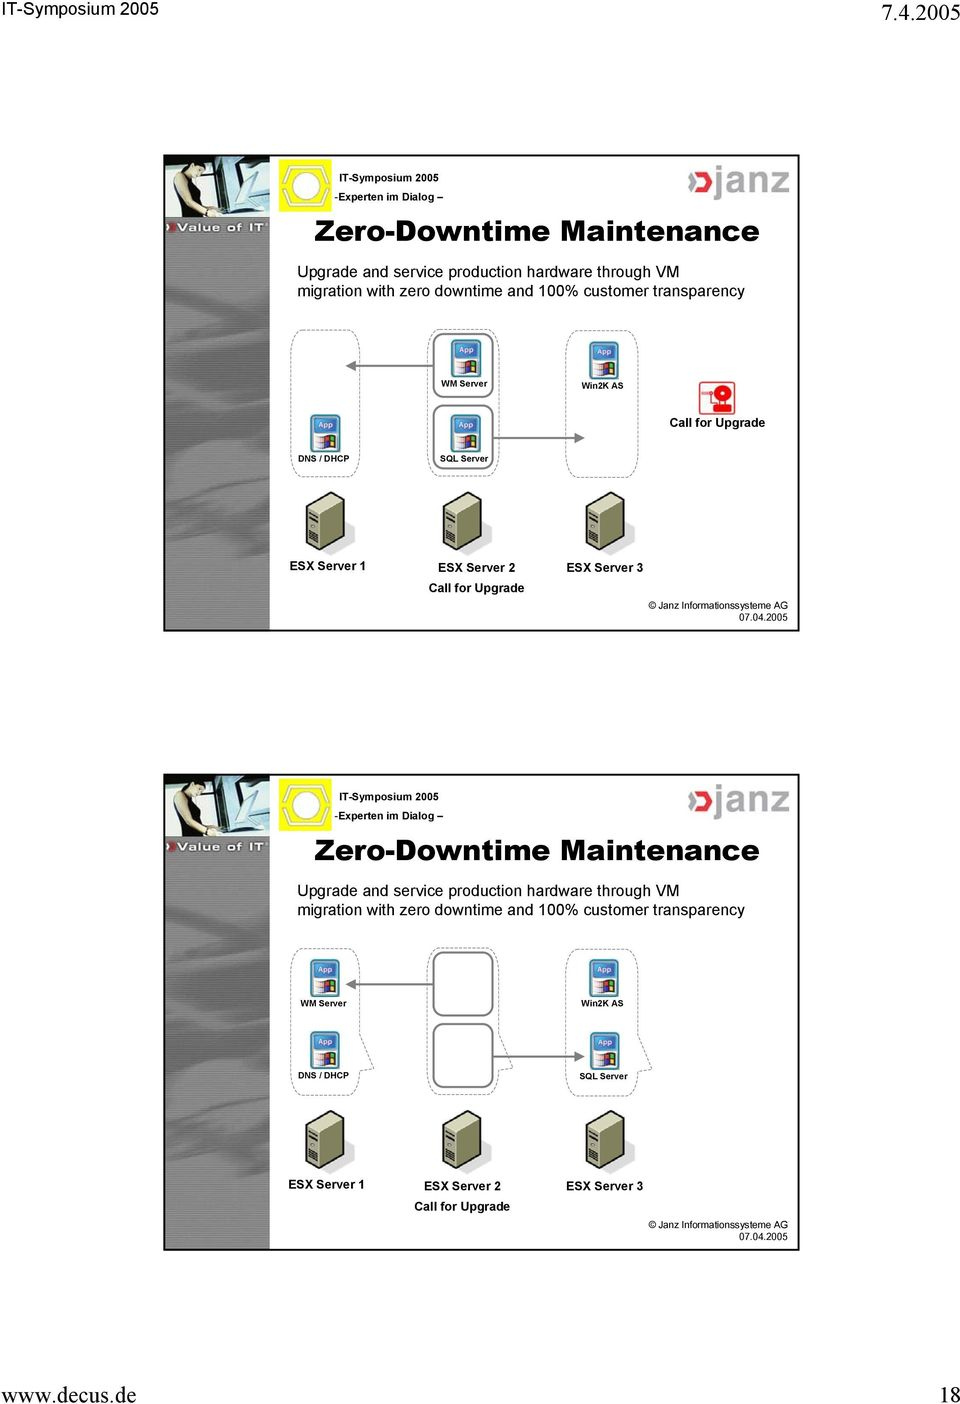 Zero-Downtime Maintenance Upgrade and service production hardware through VM migration with zero downtime and 100% customer